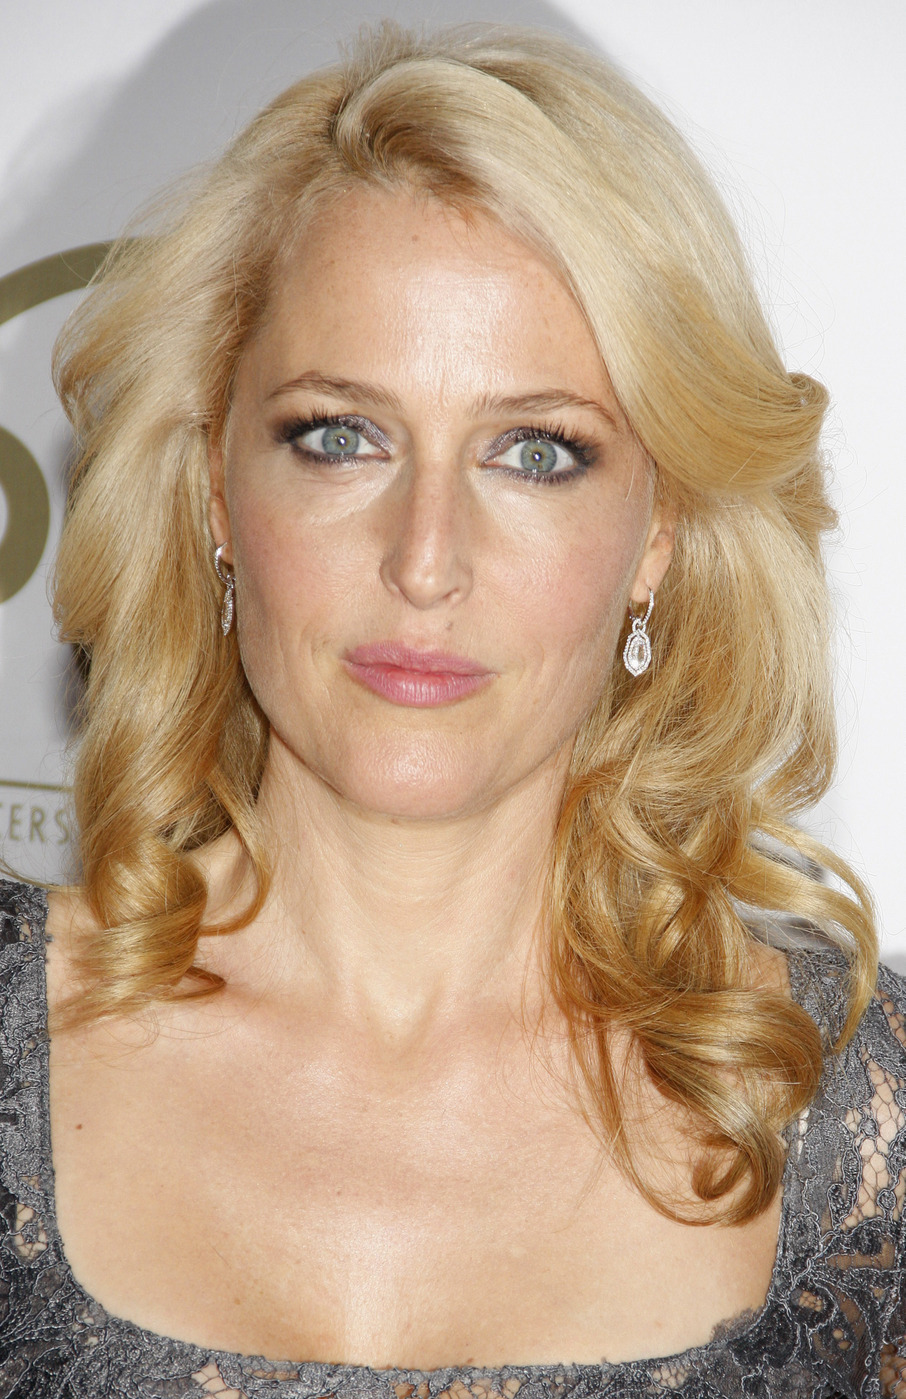 gillian anderson - photo #29